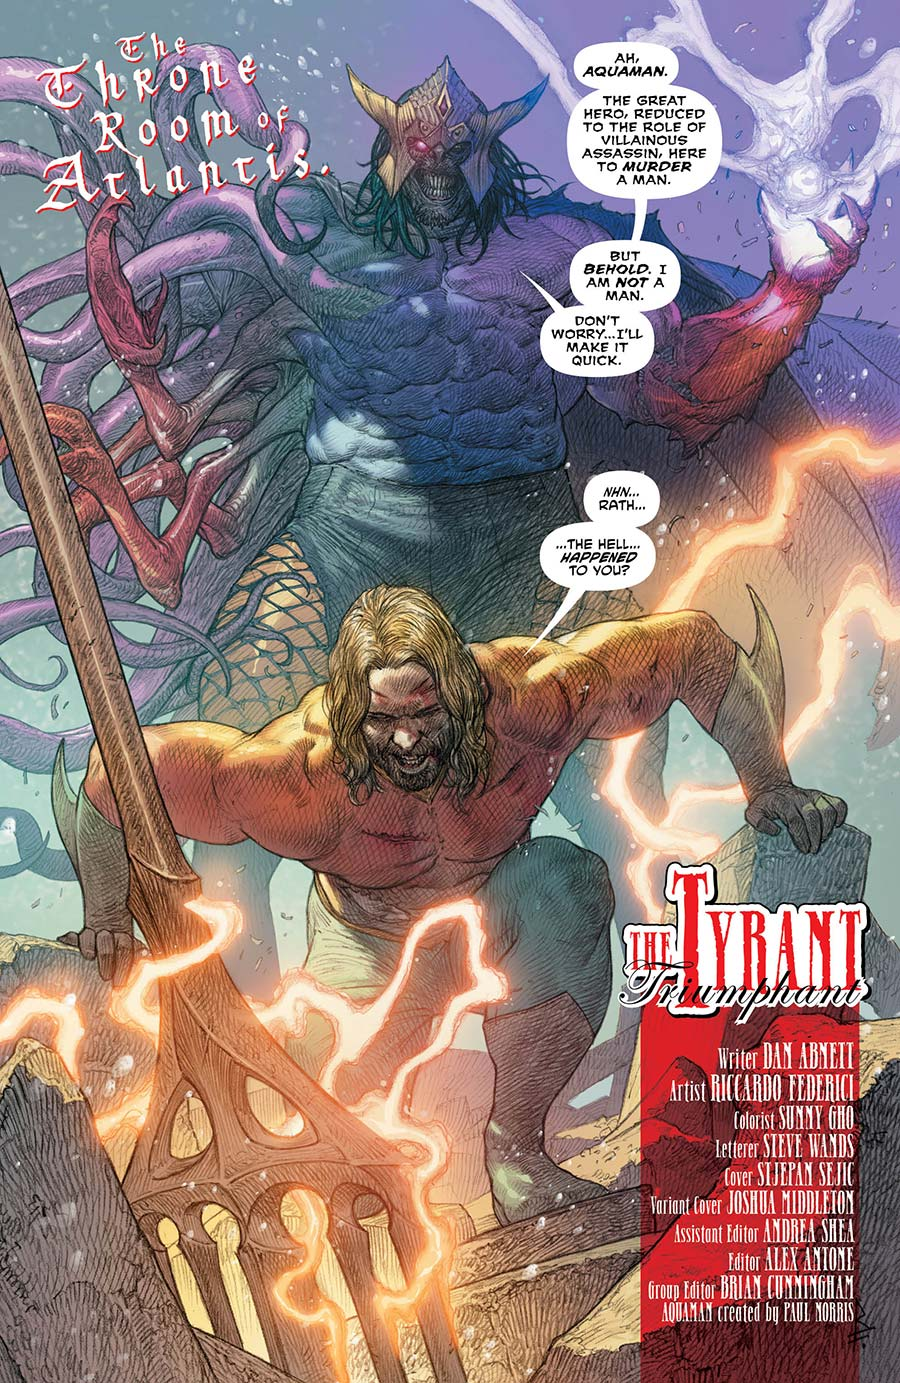 Aquaman 37_1 - DC Comics News